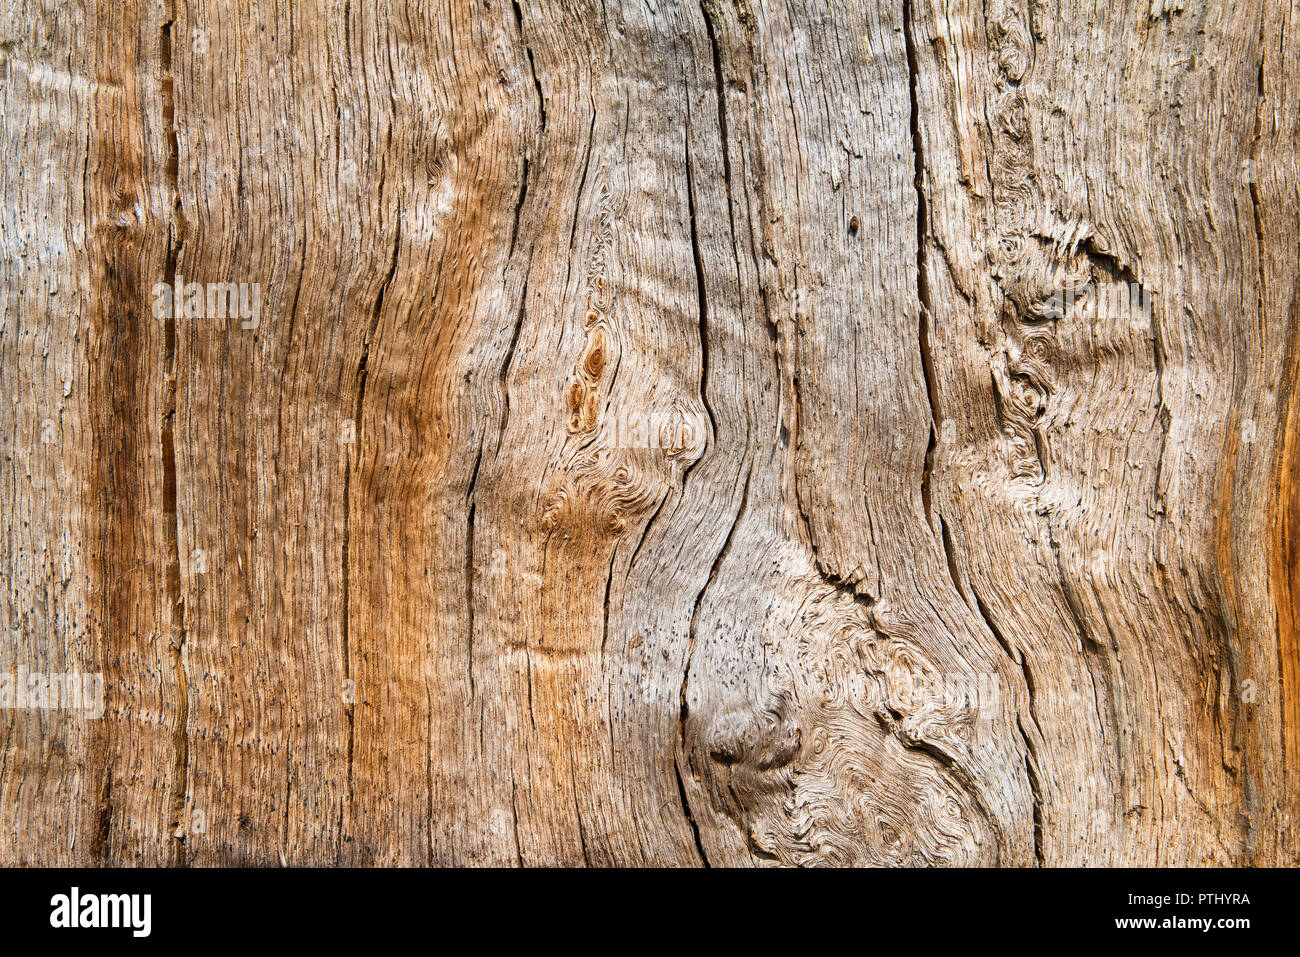 Oak wood in longitudinal section, beautiful texture filled with cracks and knots, background, close up Stock Photo